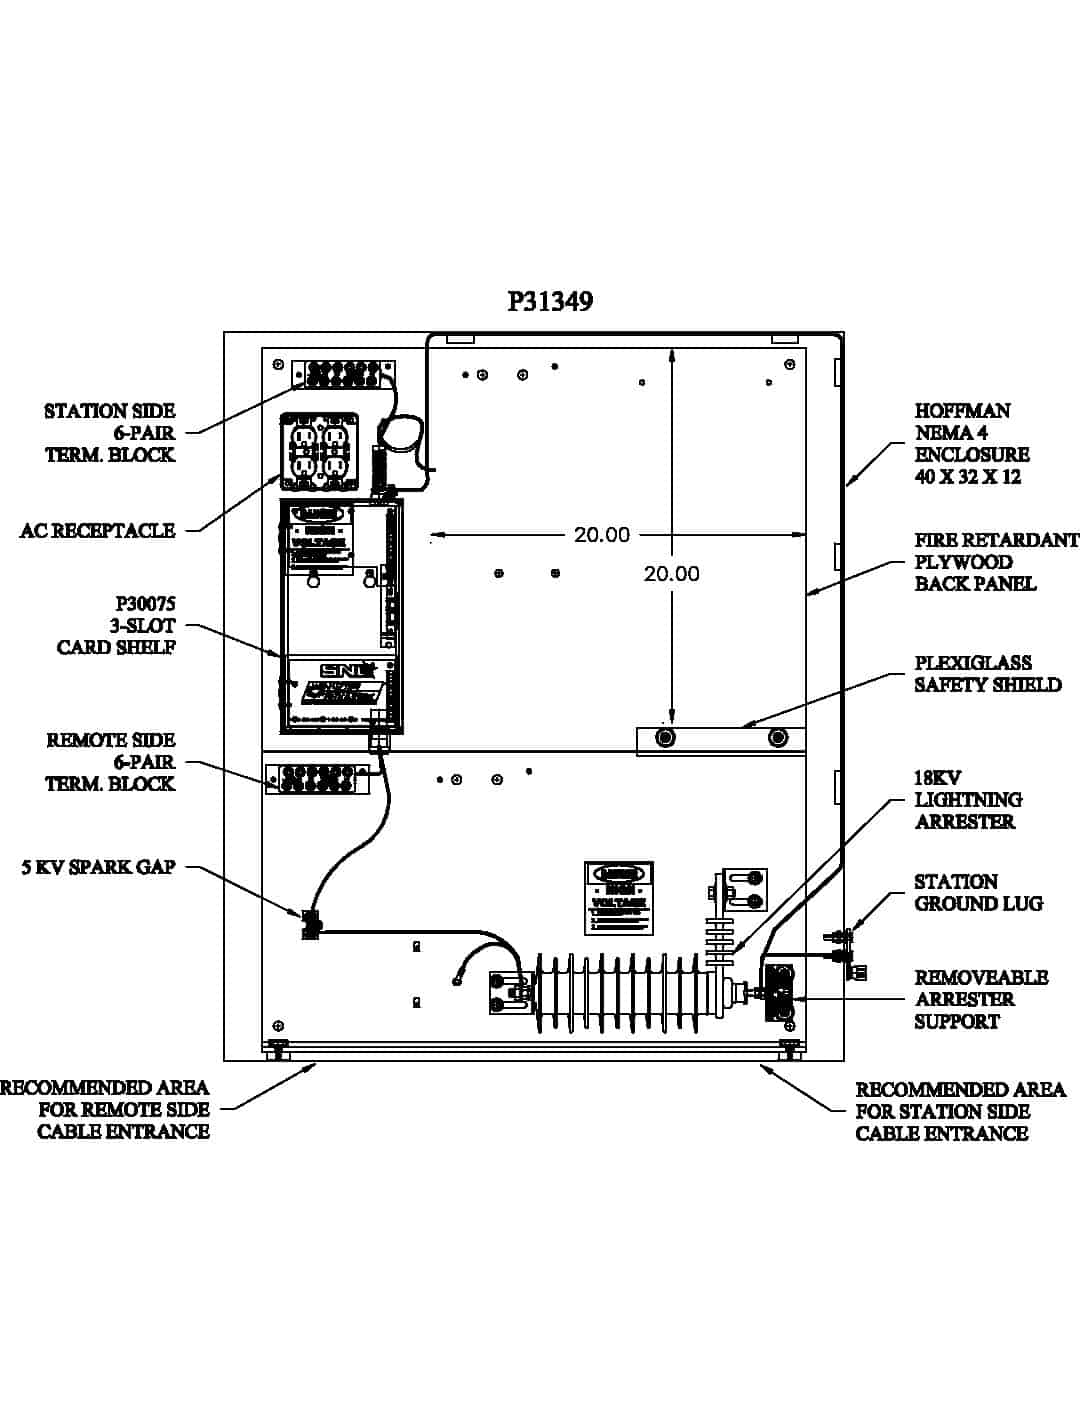 P31349 Turnkey Protection Packages - 3 slot PDF thumbnail